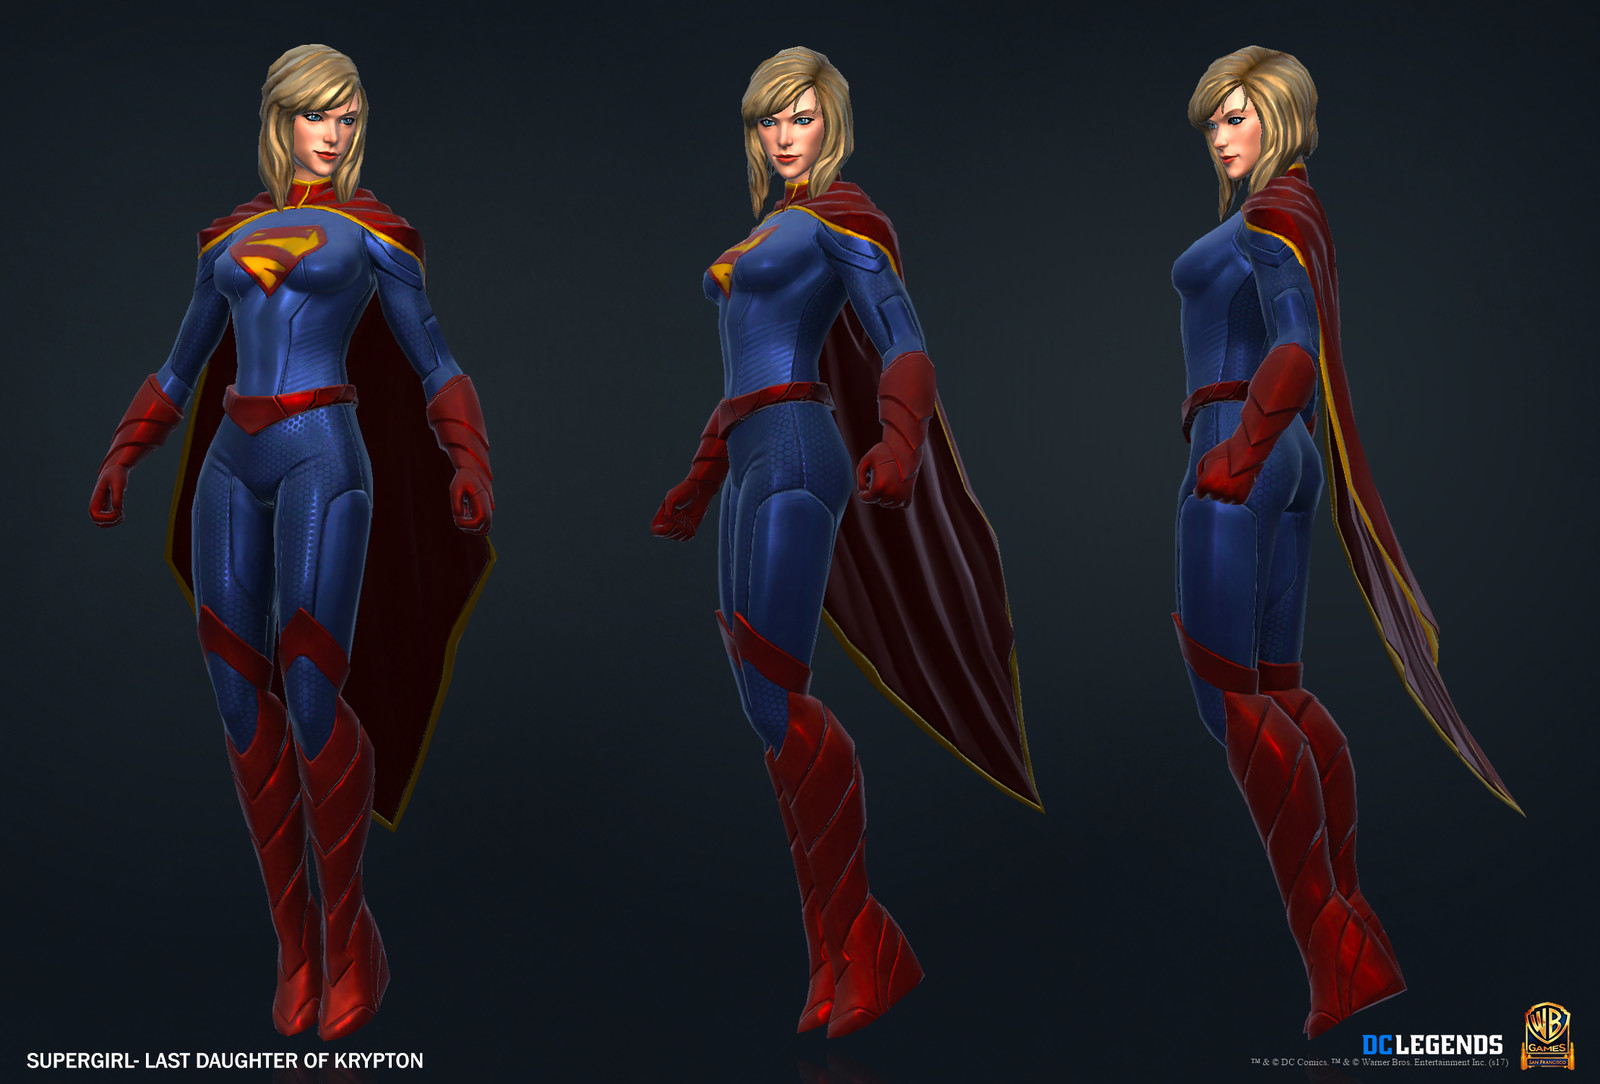 Supergirl Legendary High Poly, Low Poly Textures/Material work done by me. Additional Texture/Material pass done by Josiah Martinez.